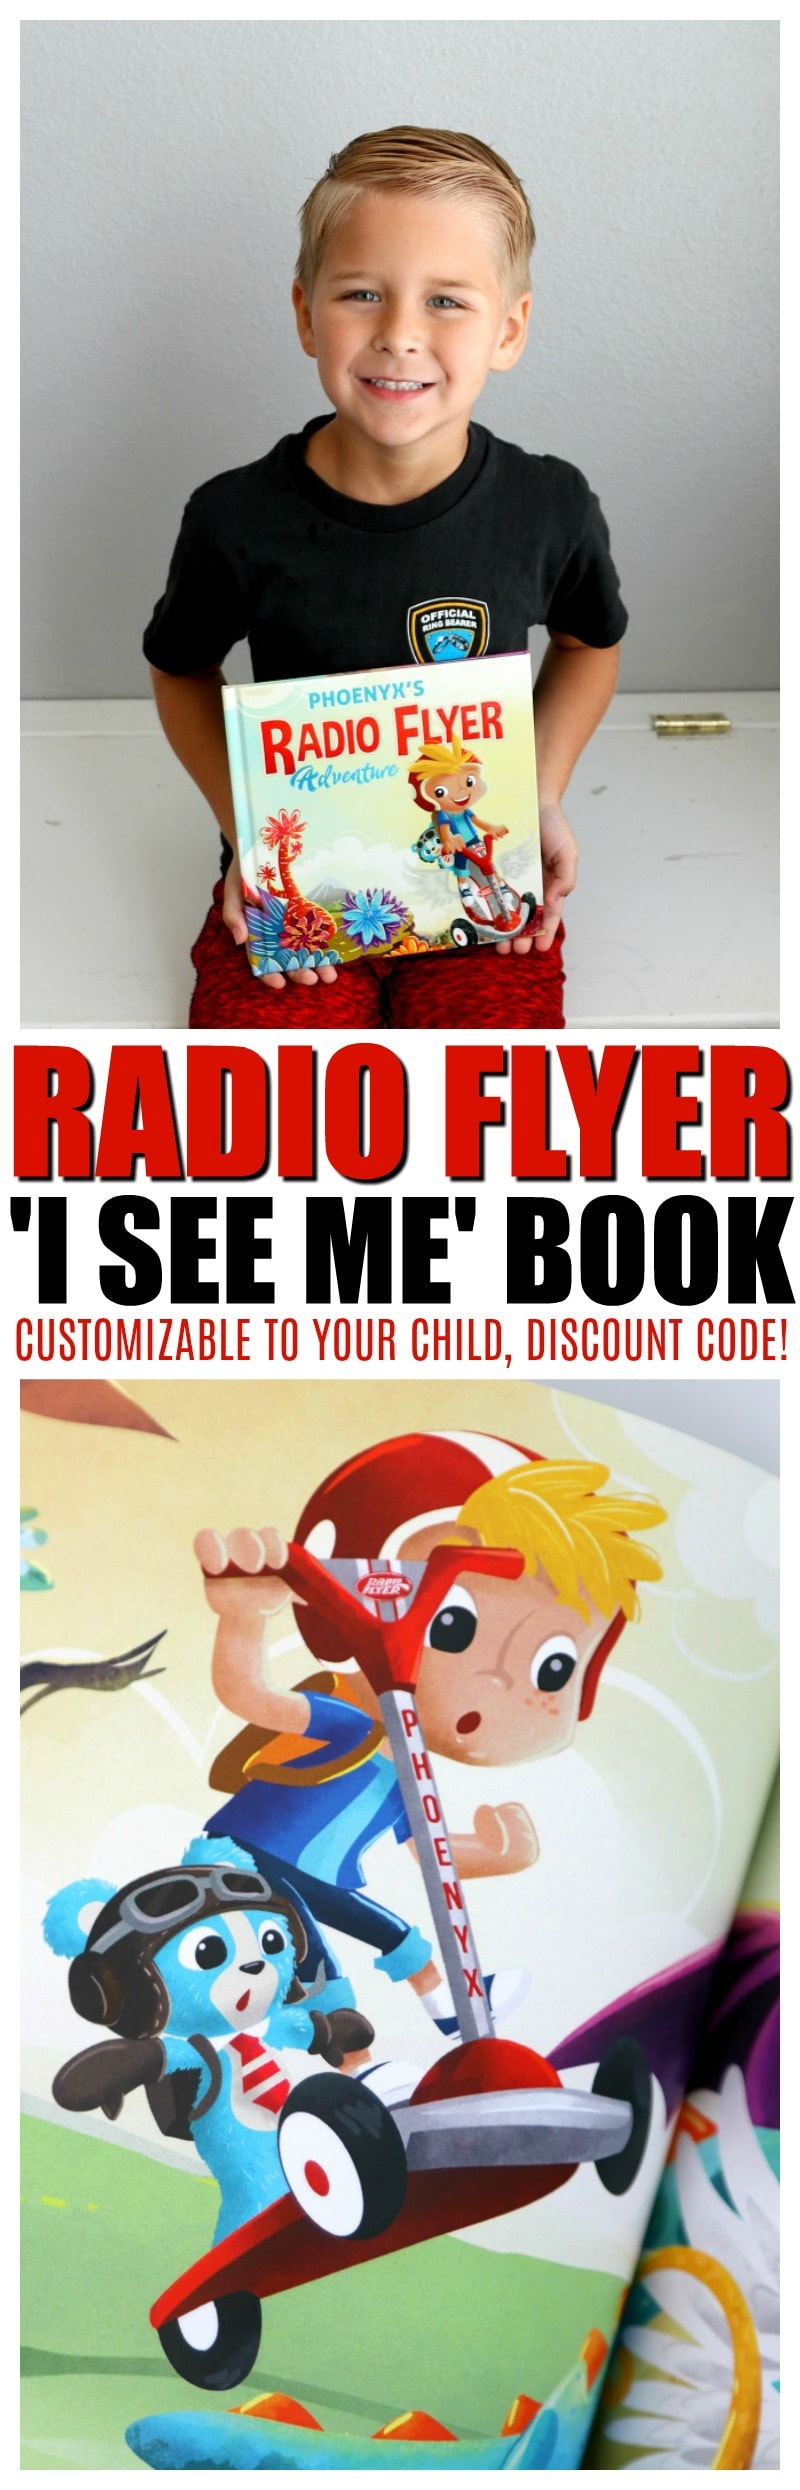 I SEE ME personalized books Radio Flyer Adventure | Discount Code | Top Child's Book